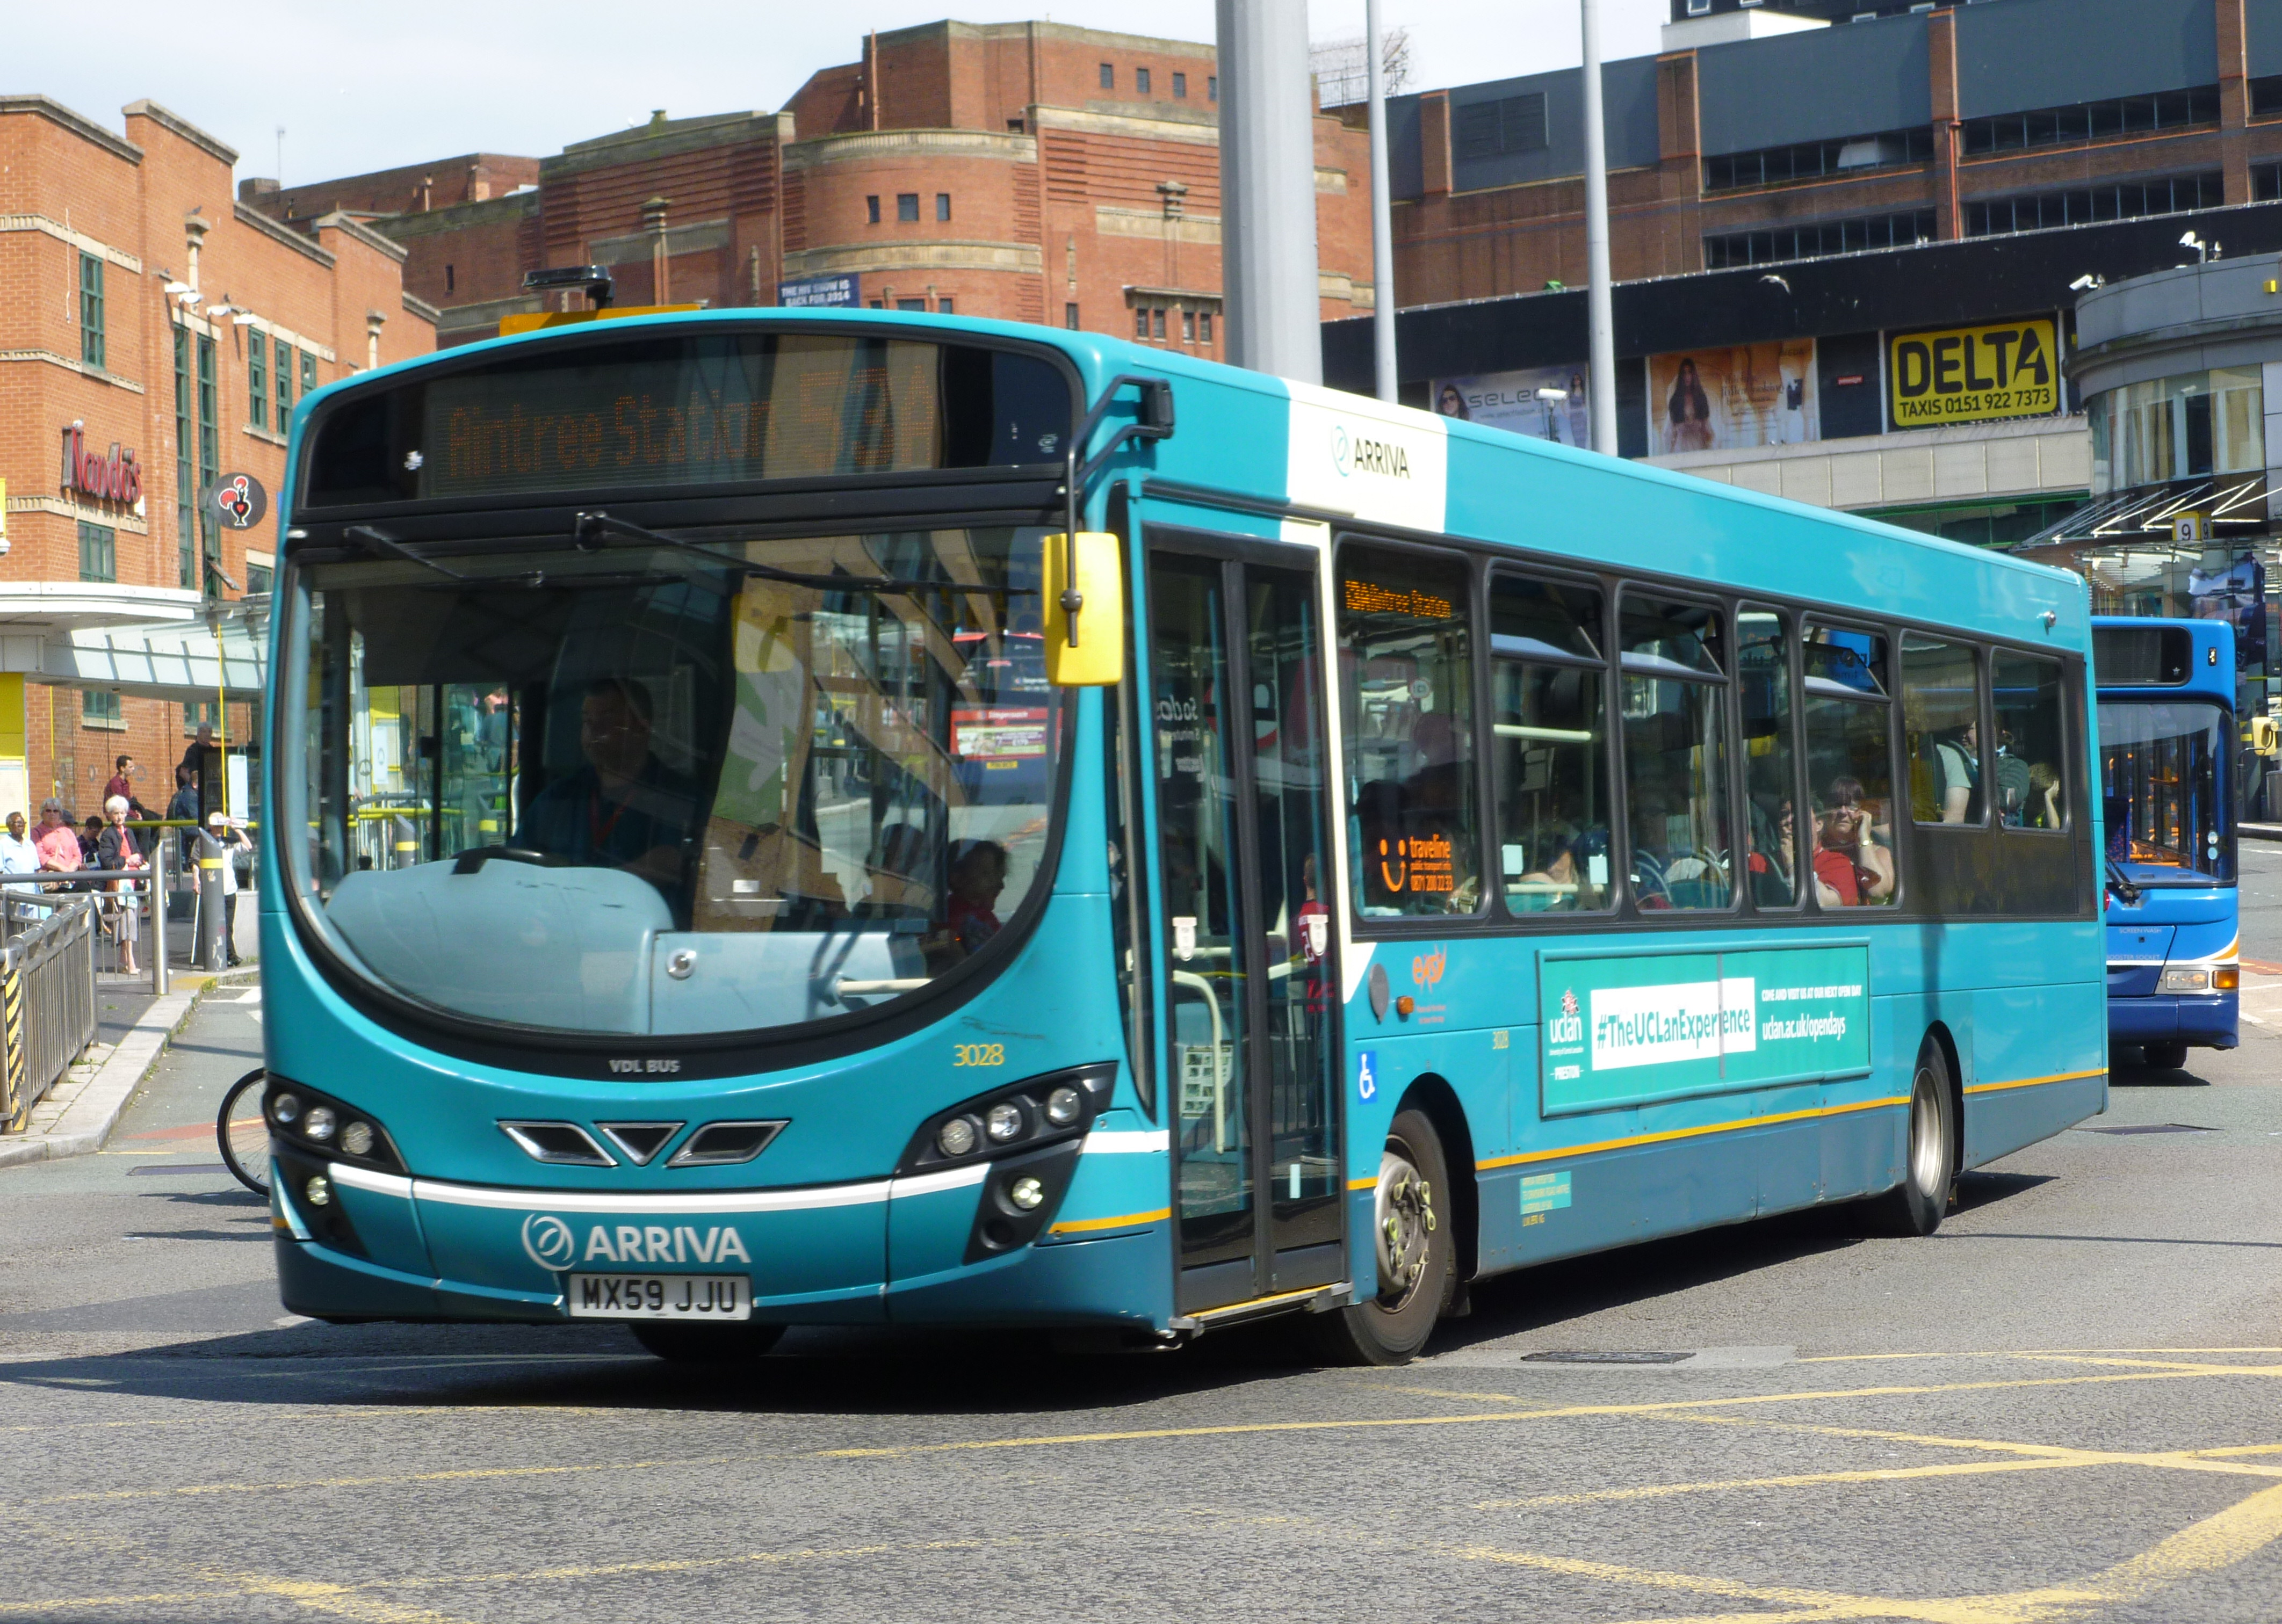 Residents angry that Arriva North Westis to cut 313 bus service in Ashurst, Skelmersdale